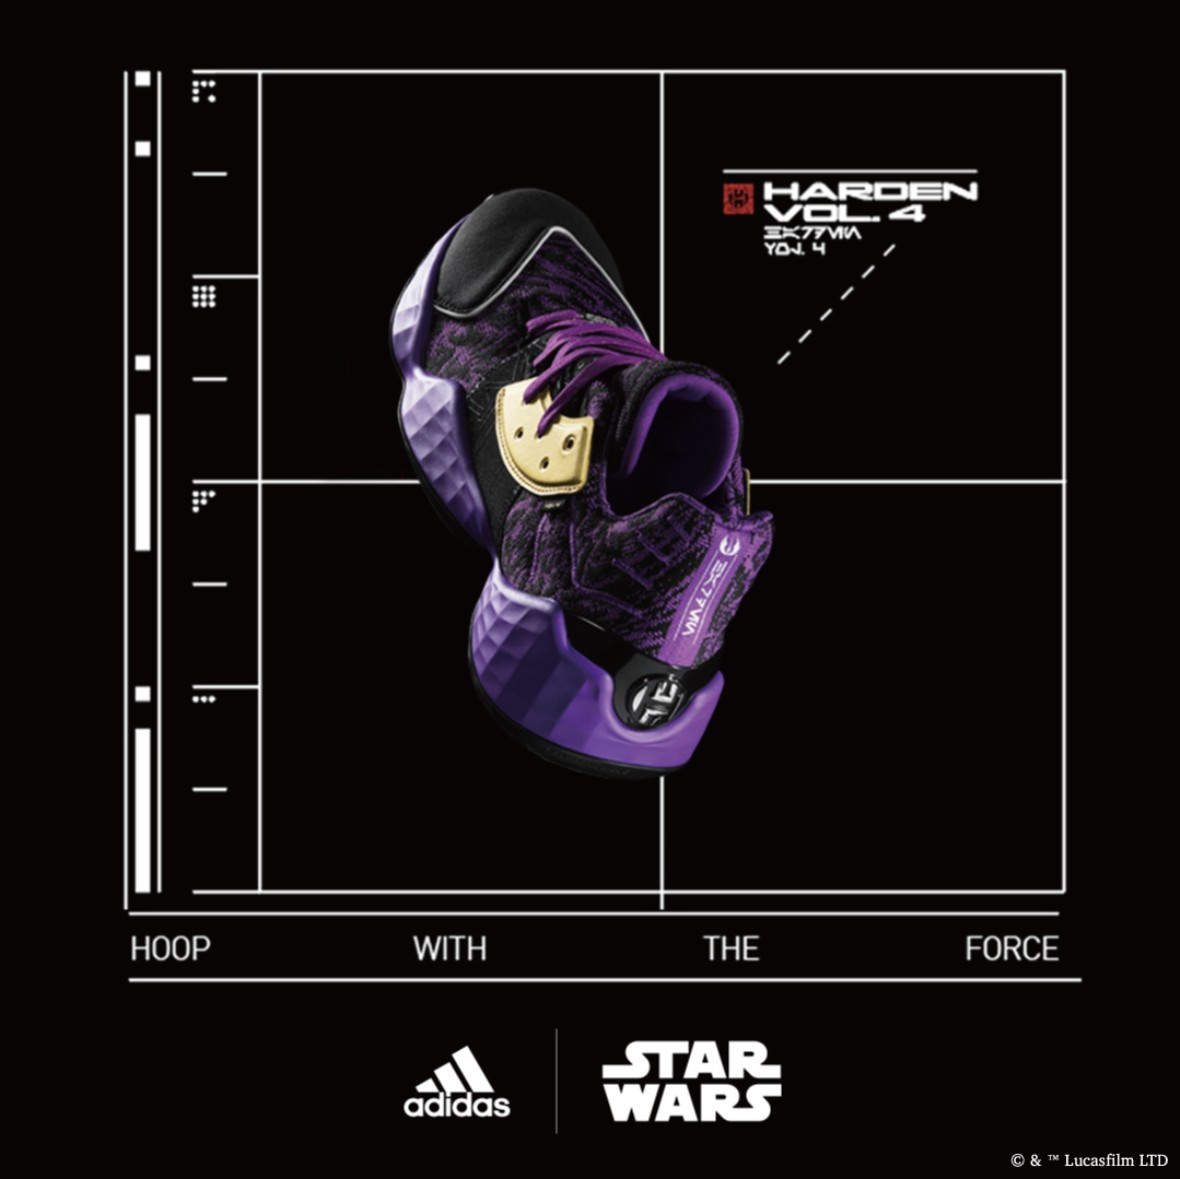 star-wars-adidas-collaboration-release-20191101